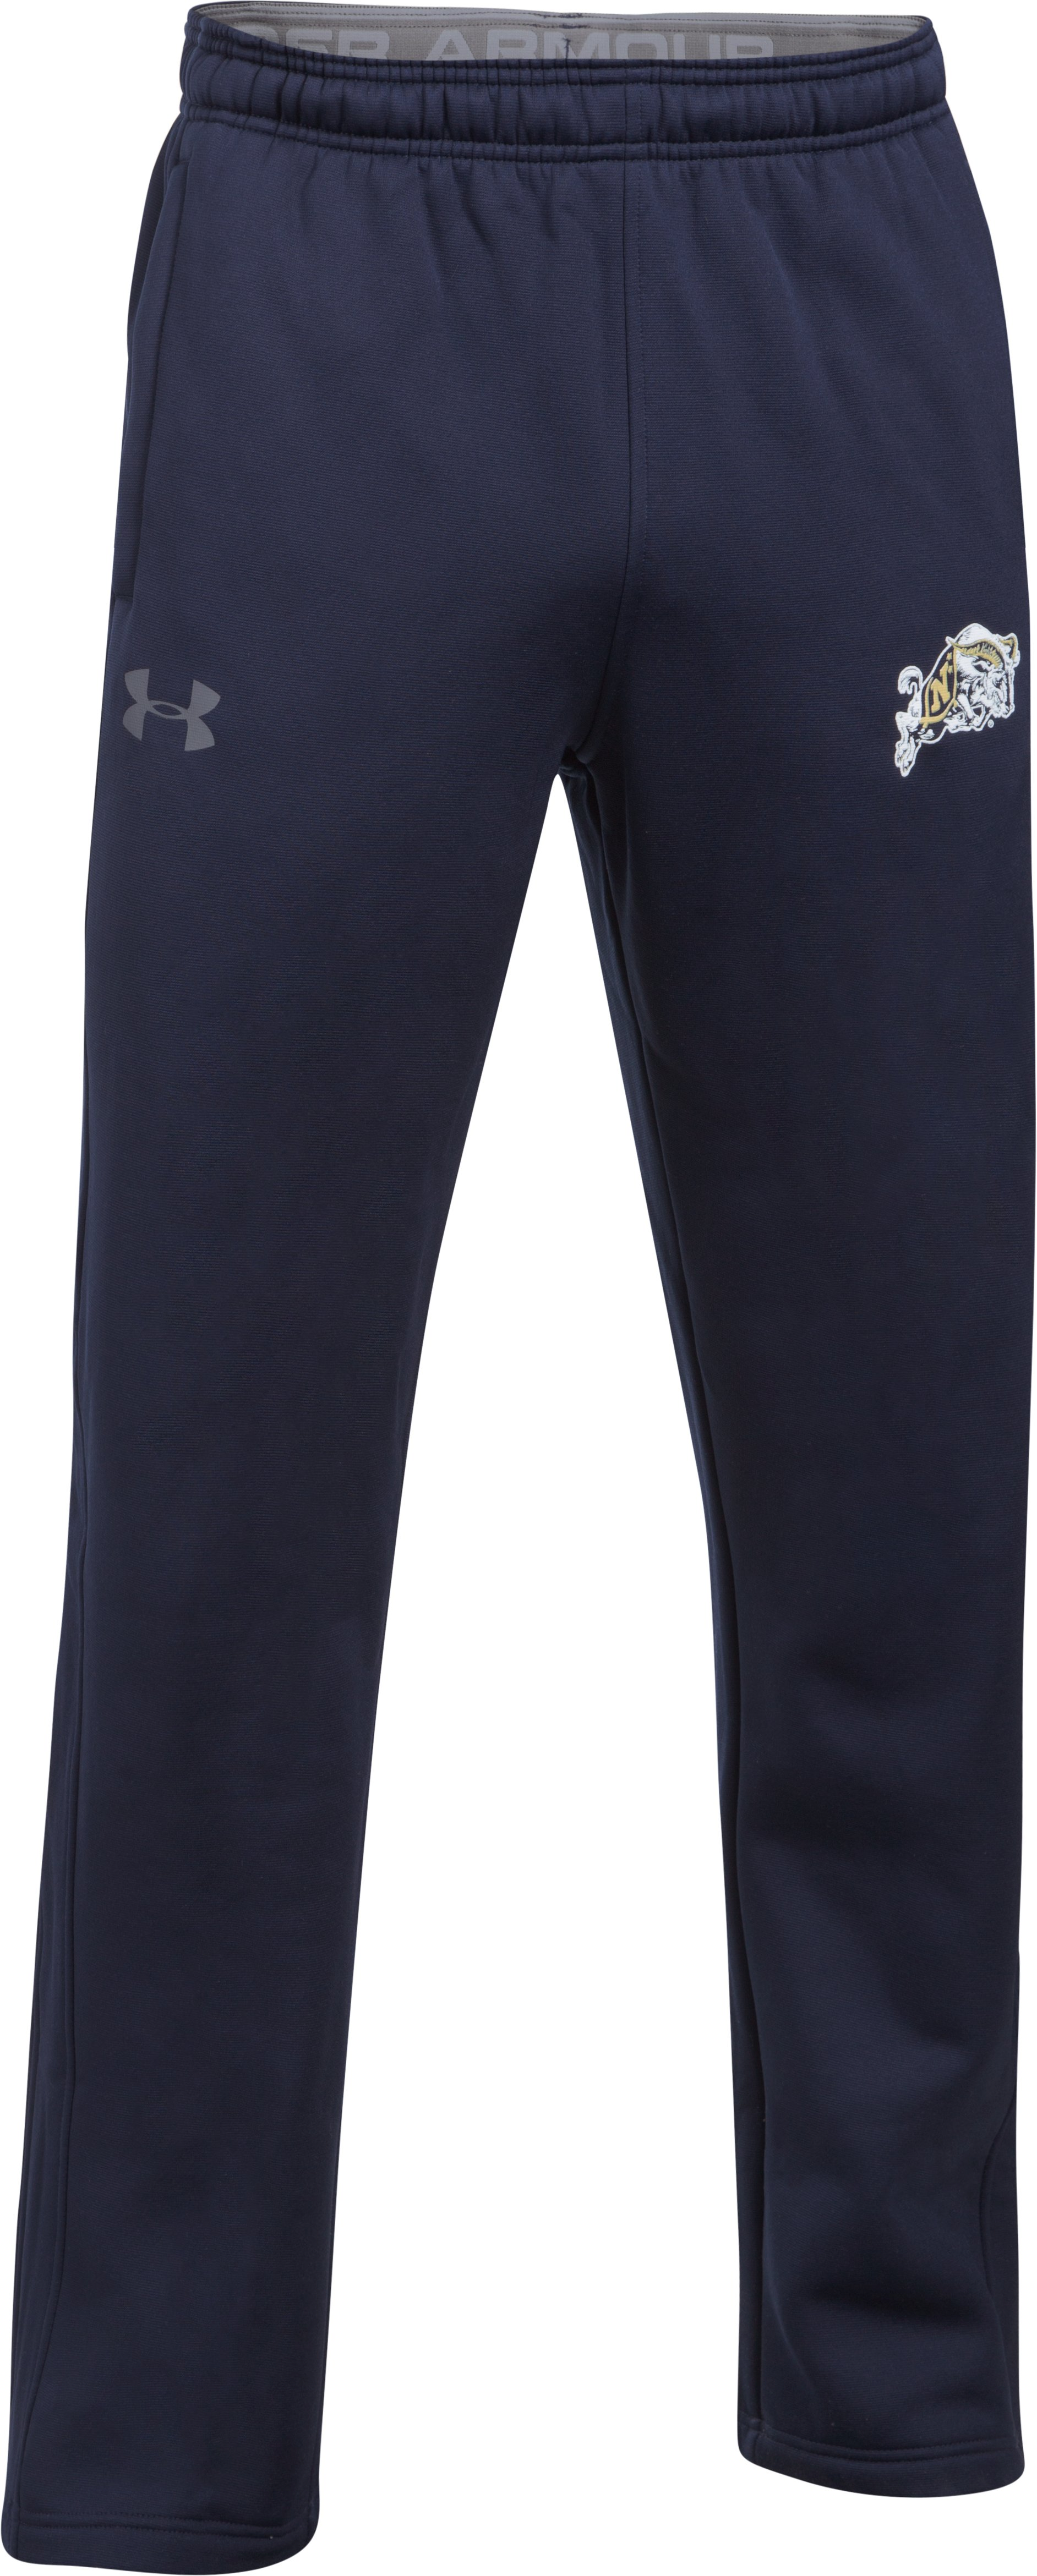 Men's Naval Academy Armour® Fleece Pants, Midnight Navy, undefined